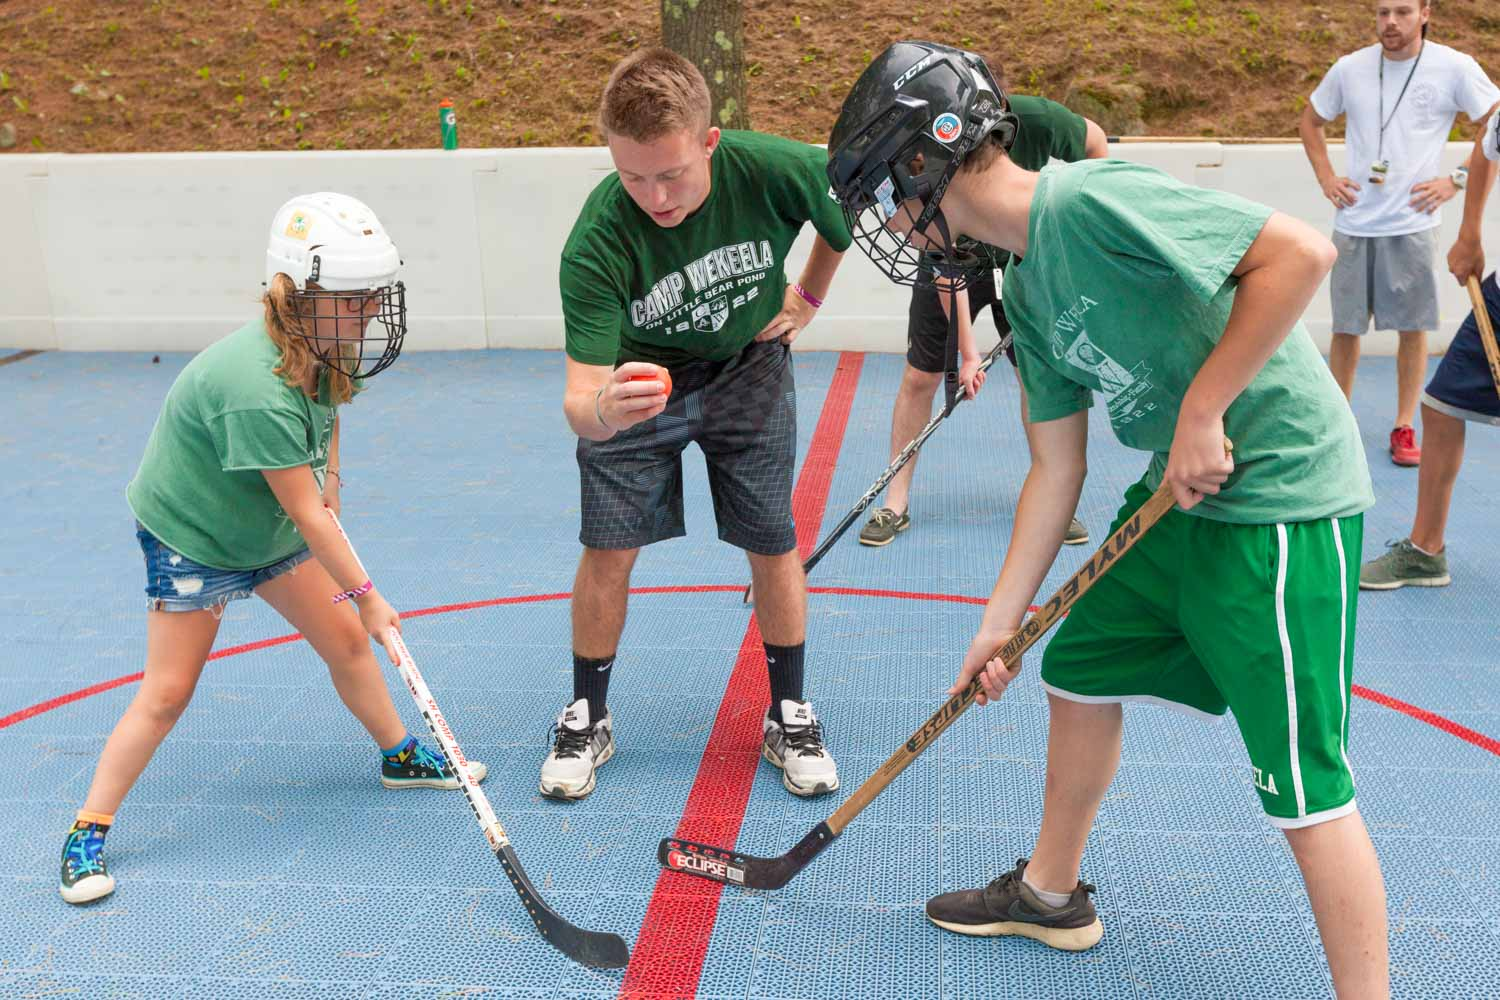 Street hockey game at summer camp